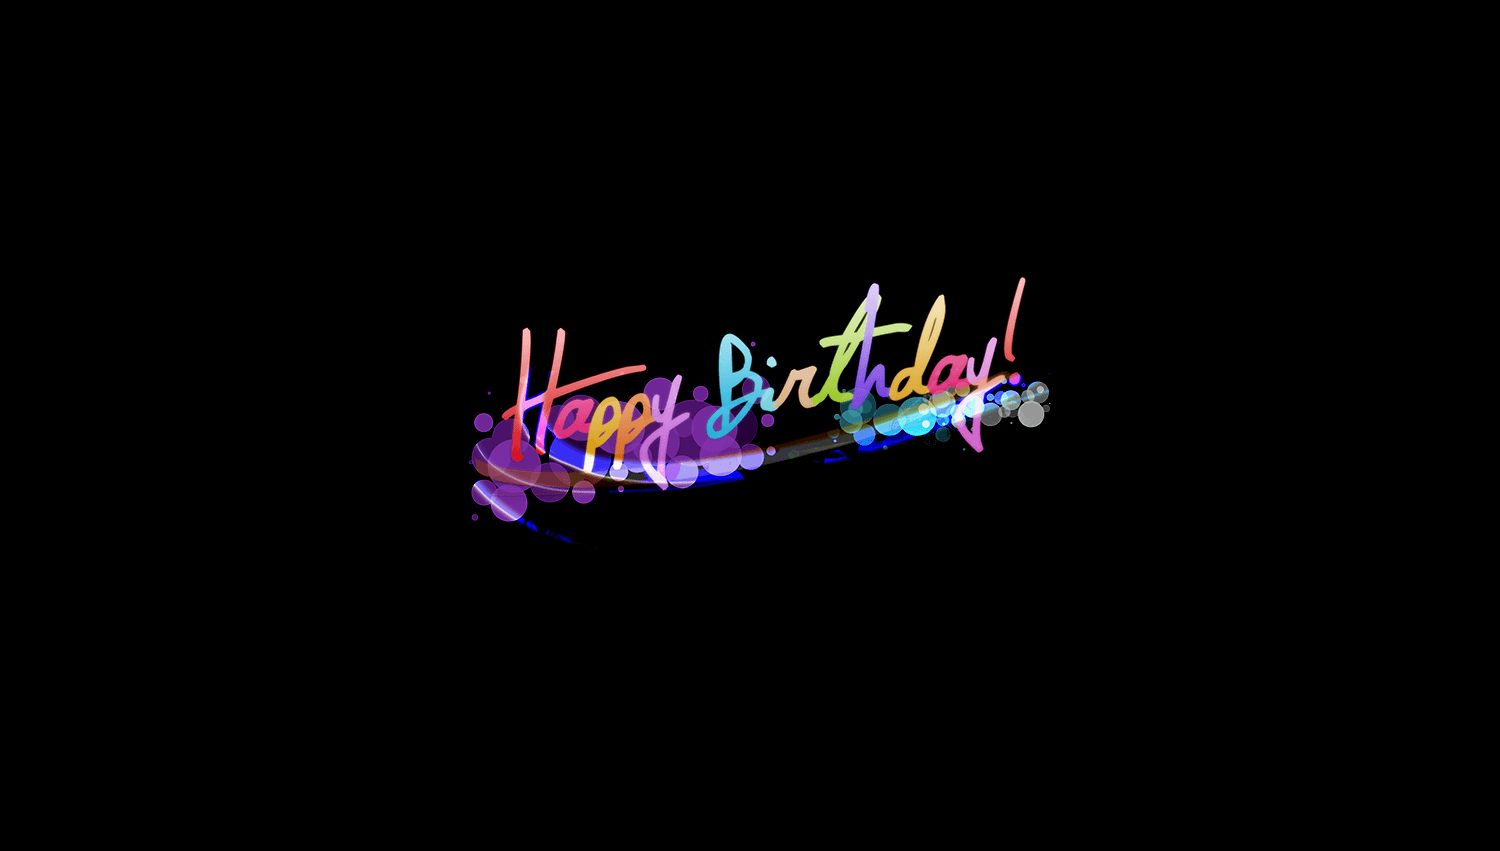 Wallpapers Of Happy Birthday Wallpaper Cave